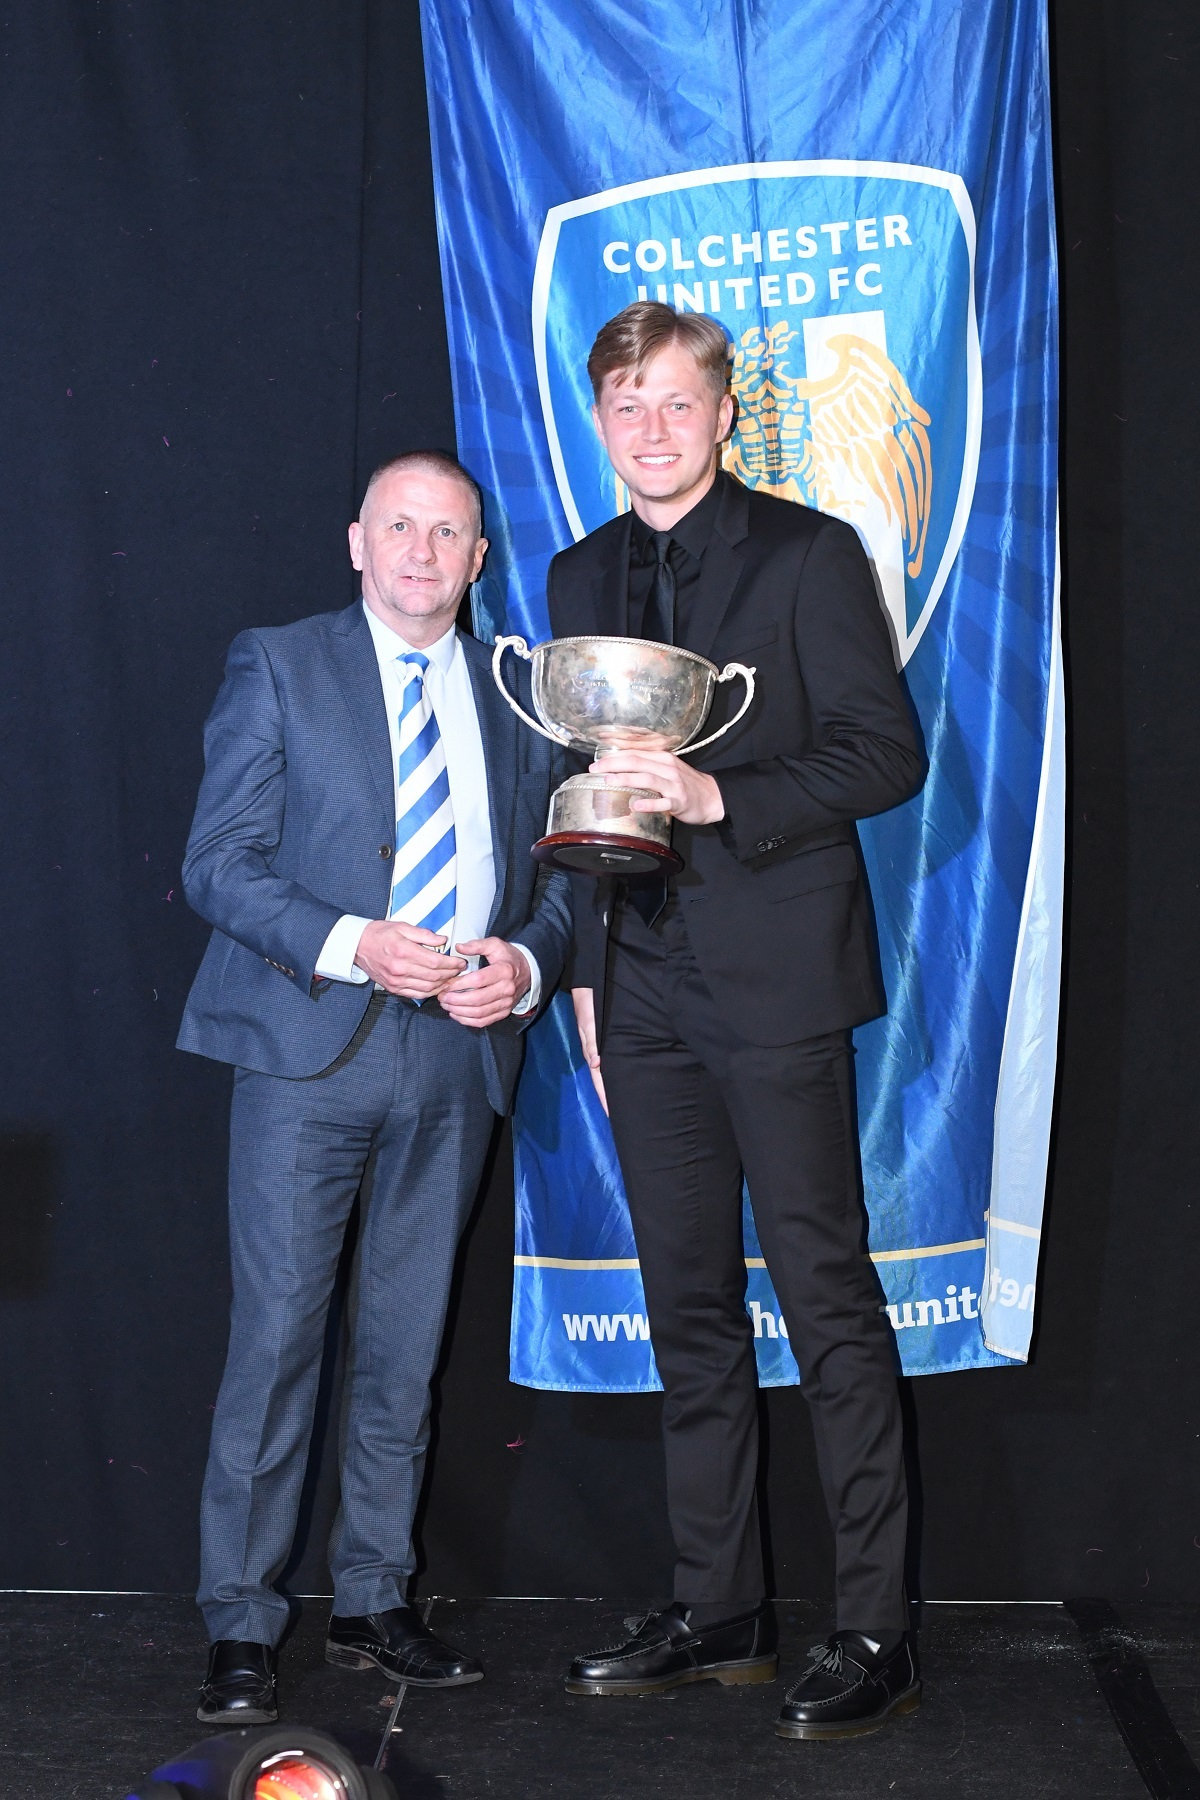 Trophy time - Frankie Kent receives his Player of the Year trophy from chairman Robbie Cowling at Colchester United's End of Season Awards Dinner Picture: JO ADAMS